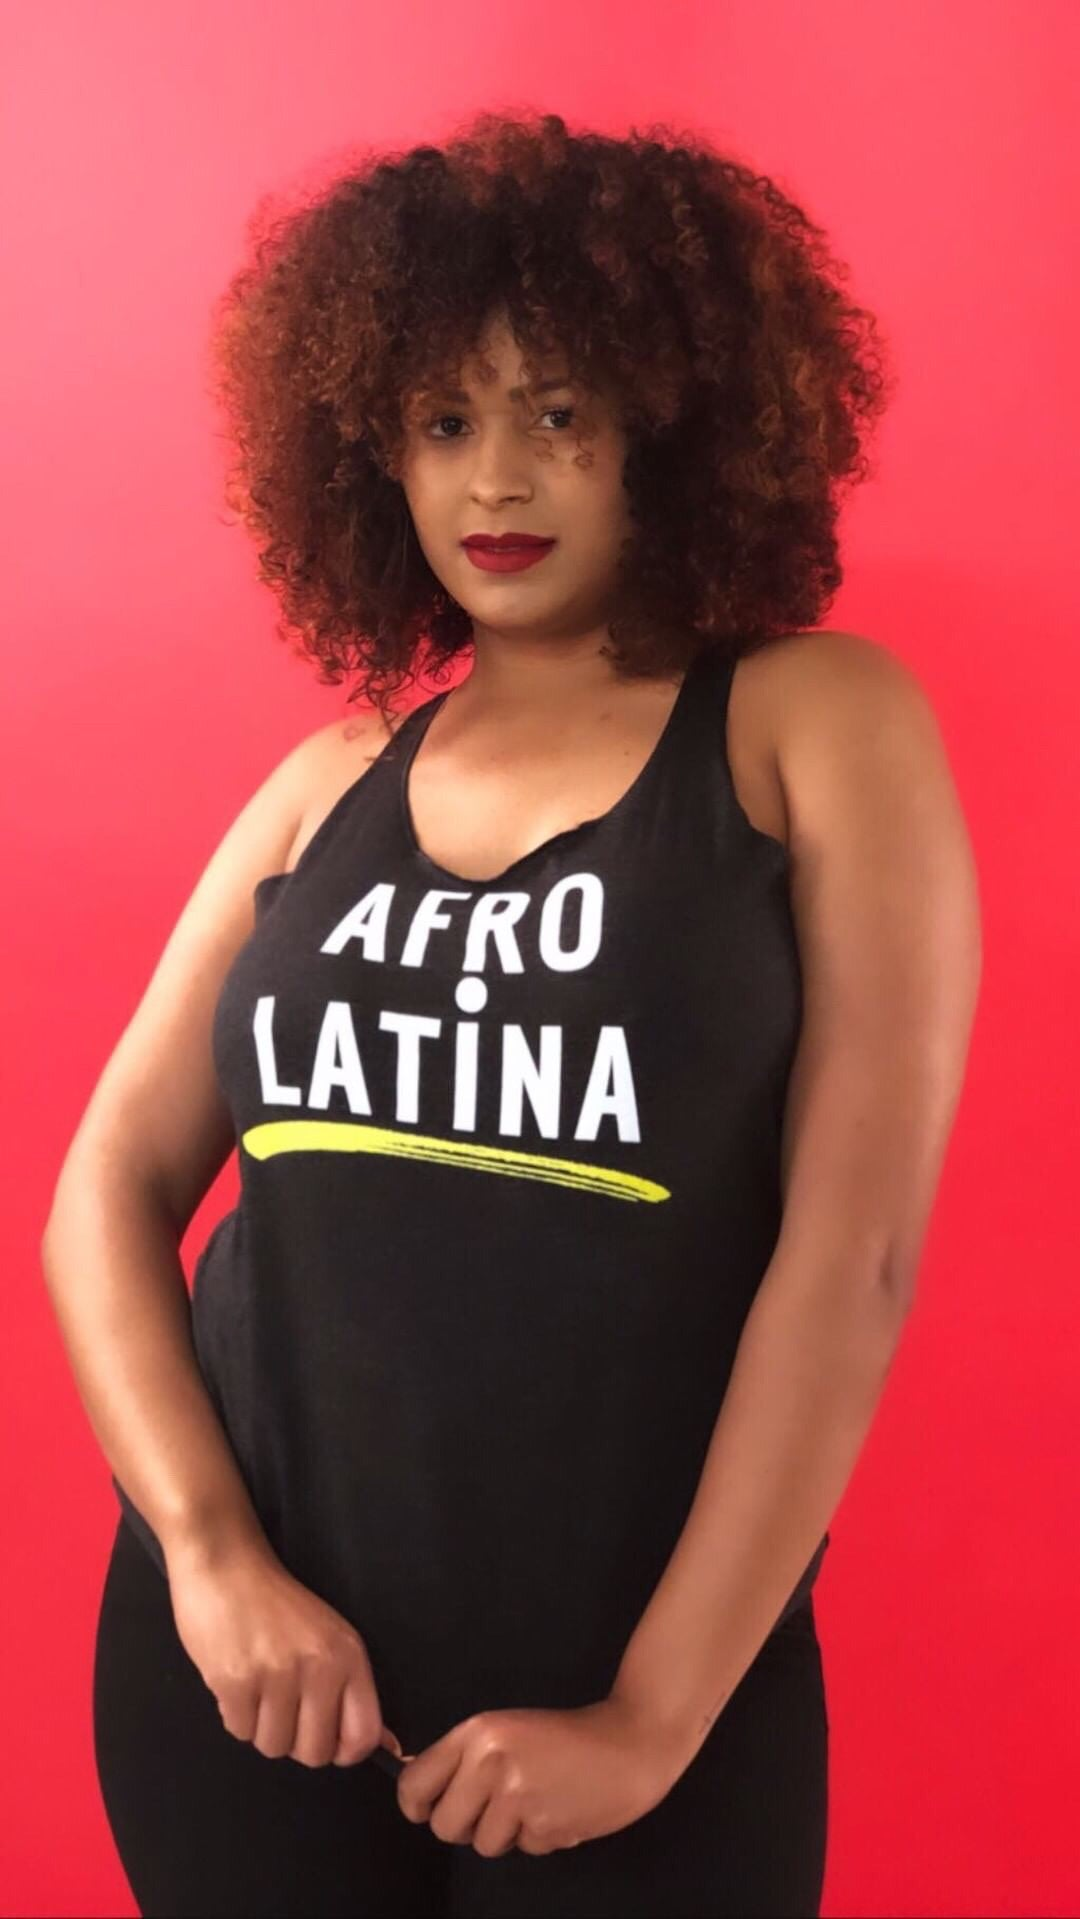 Afro-Latina Tank Top - Latina Power